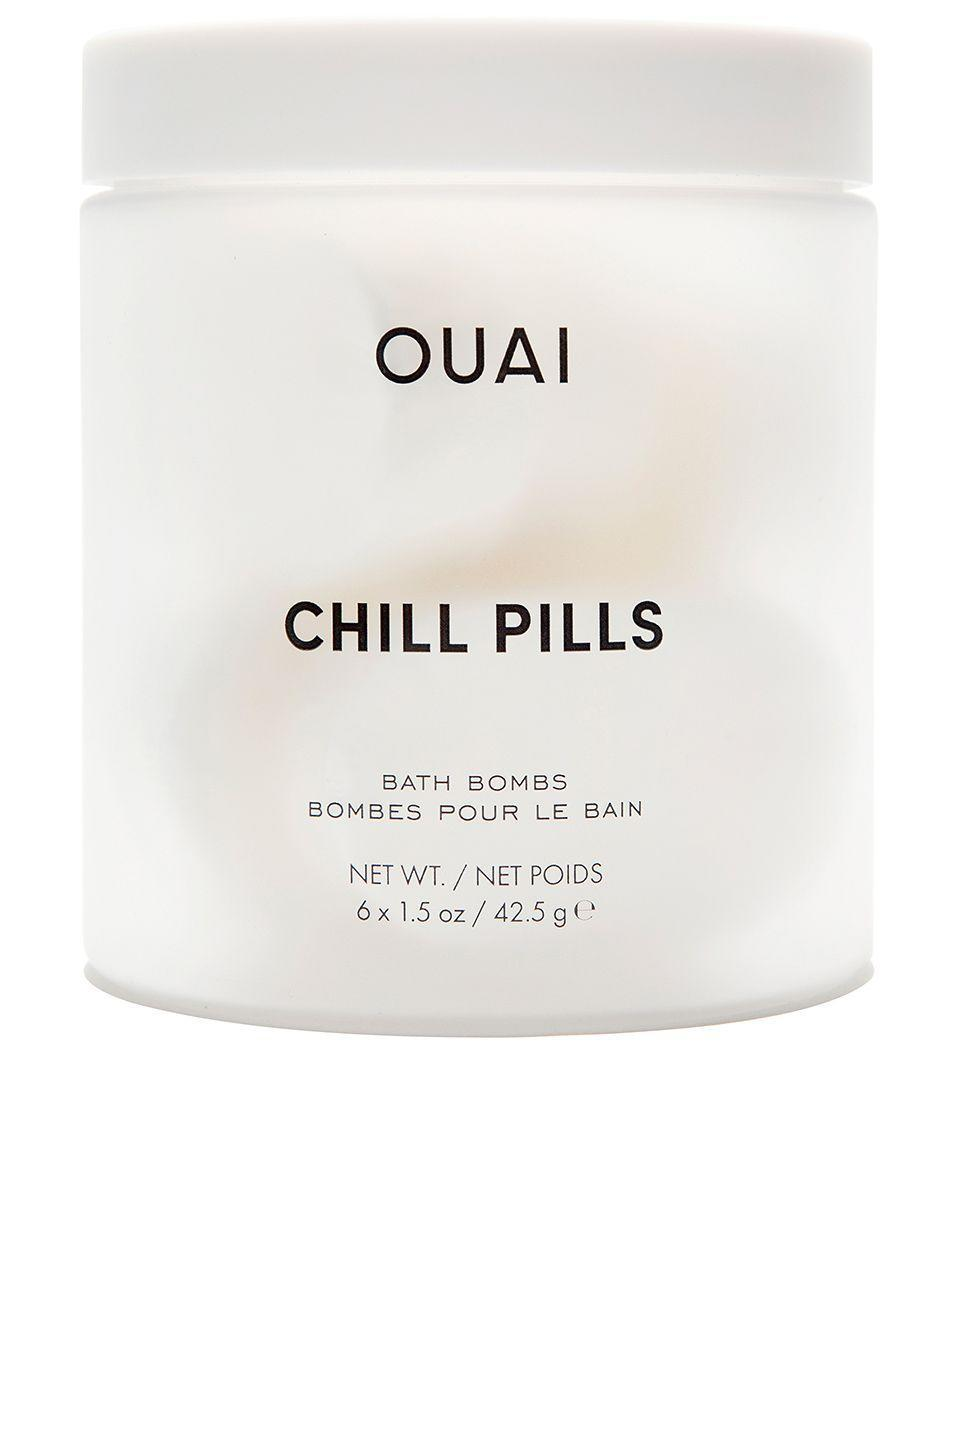 """<p><strong>Ouai</strong></p><p>revolve.com</p><p><strong>$30.00</strong></p><p><a href=""""https://go.redirectingat.com?id=74968X1596630&url=https%3A%2F%2Fwww.revolve.com%2Fdp%2FOUAR-WU84%2F&sref=https%3A%2F%2Fwww.esquire.com%2Flifestyle%2Fg18726497%2Flast-minute-mothers-day-gift-ideas%2F"""" rel=""""nofollow noopener"""" target=""""_blank"""" data-ylk=""""slk:Buy"""" class=""""link rapid-noclick-resp"""">Buy</a></p><p>Jasmine bath bombs never fail to make her feel pampered.</p>"""